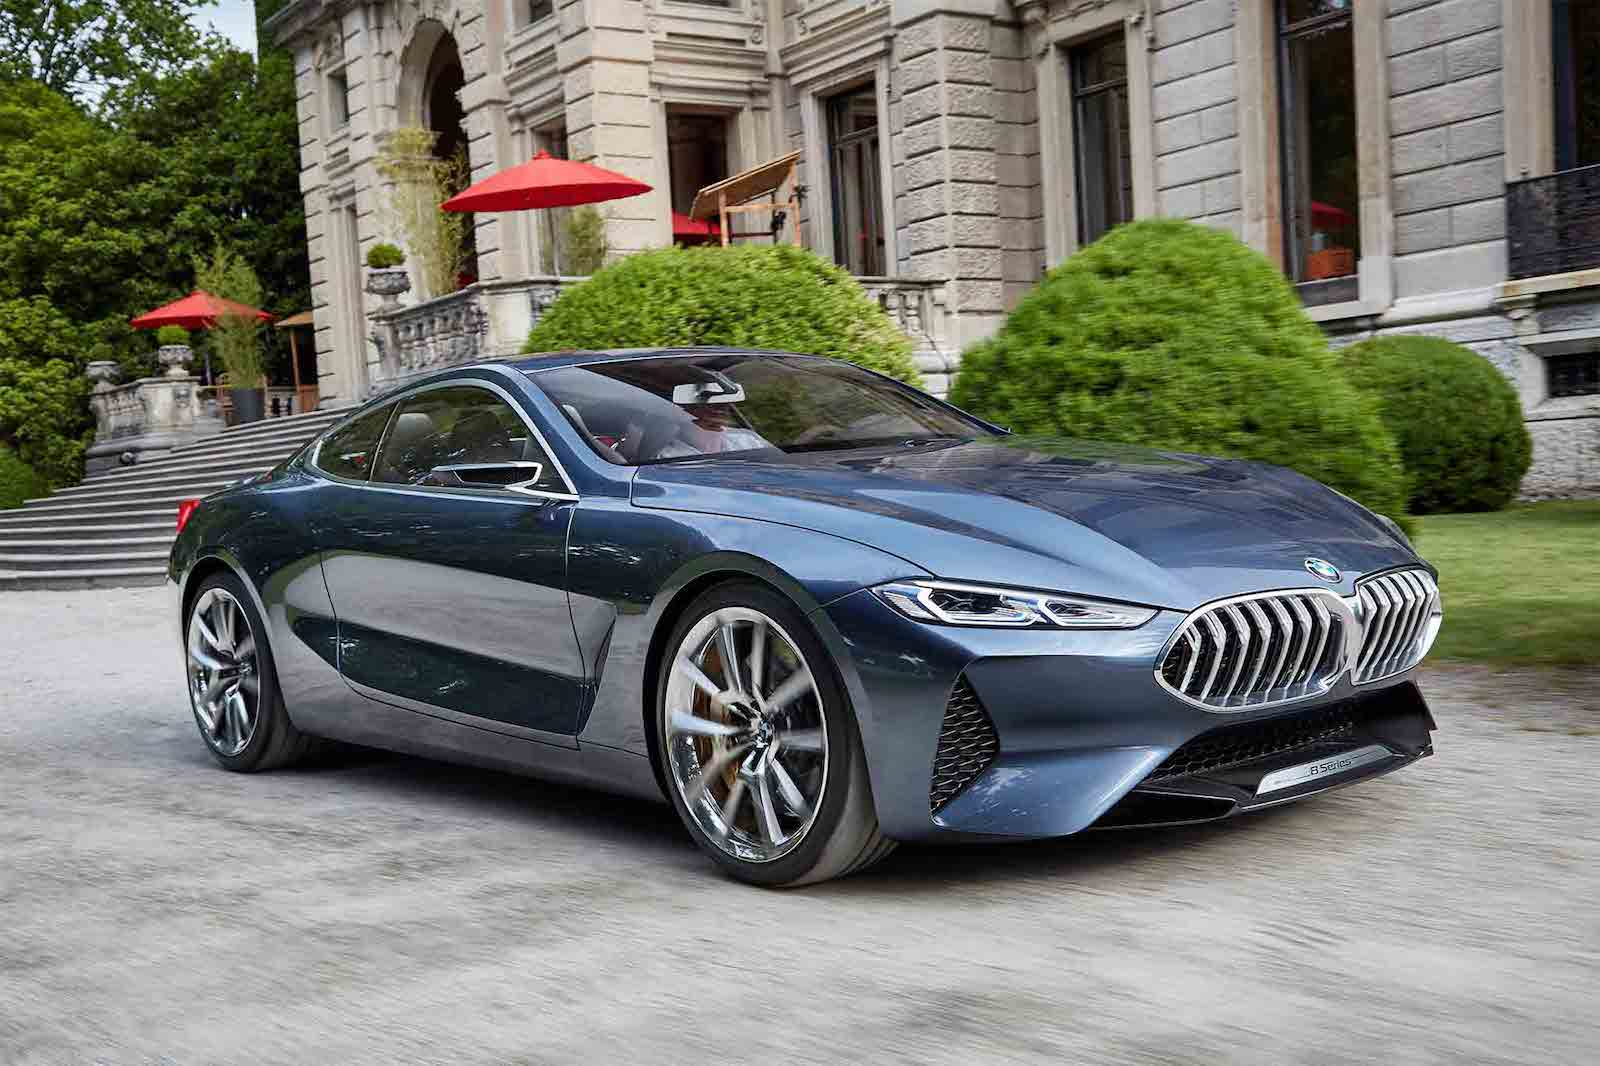 BMW 8 Series Concept Car 2018